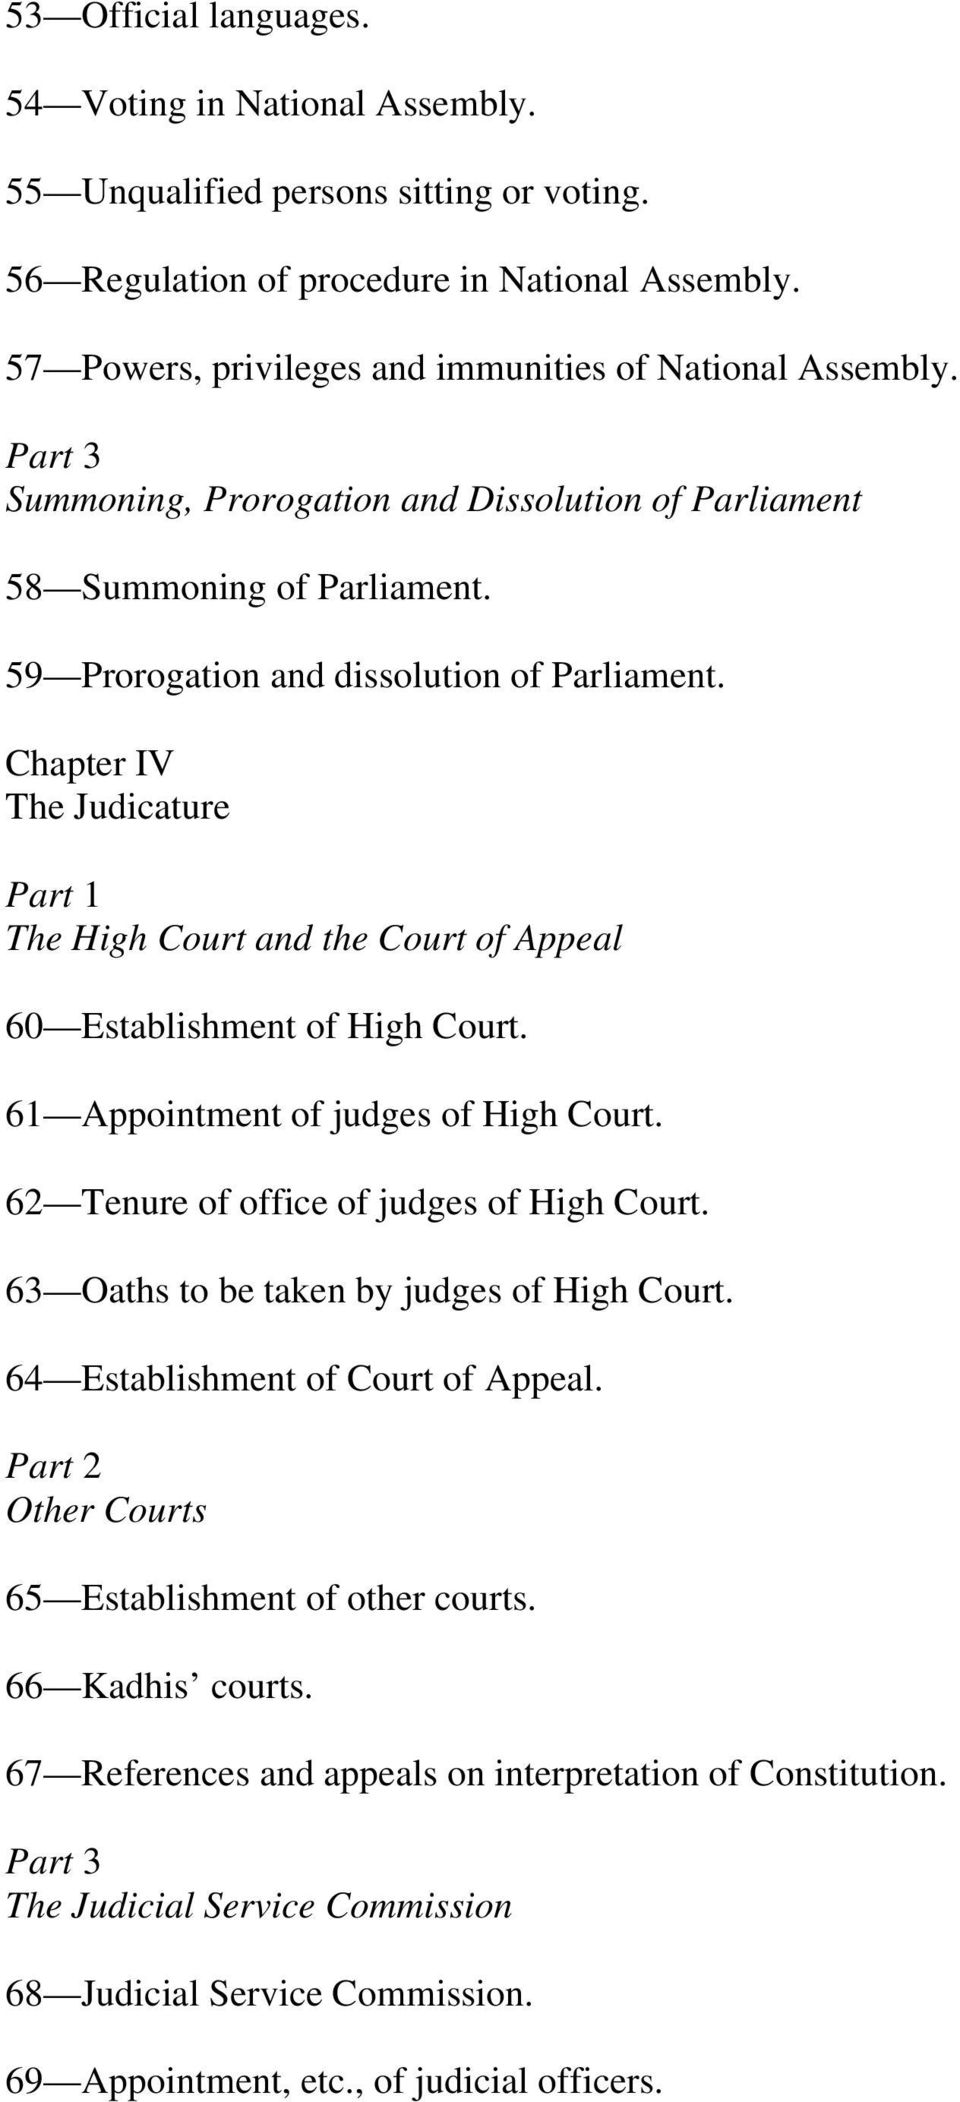 Chapter IV The Judicature Part 1 The High Court and the Court of Appeal 60 Establishment of High Court. 61 Appointment of judges of High Court. 62 Tenure of office of judges of High Court.